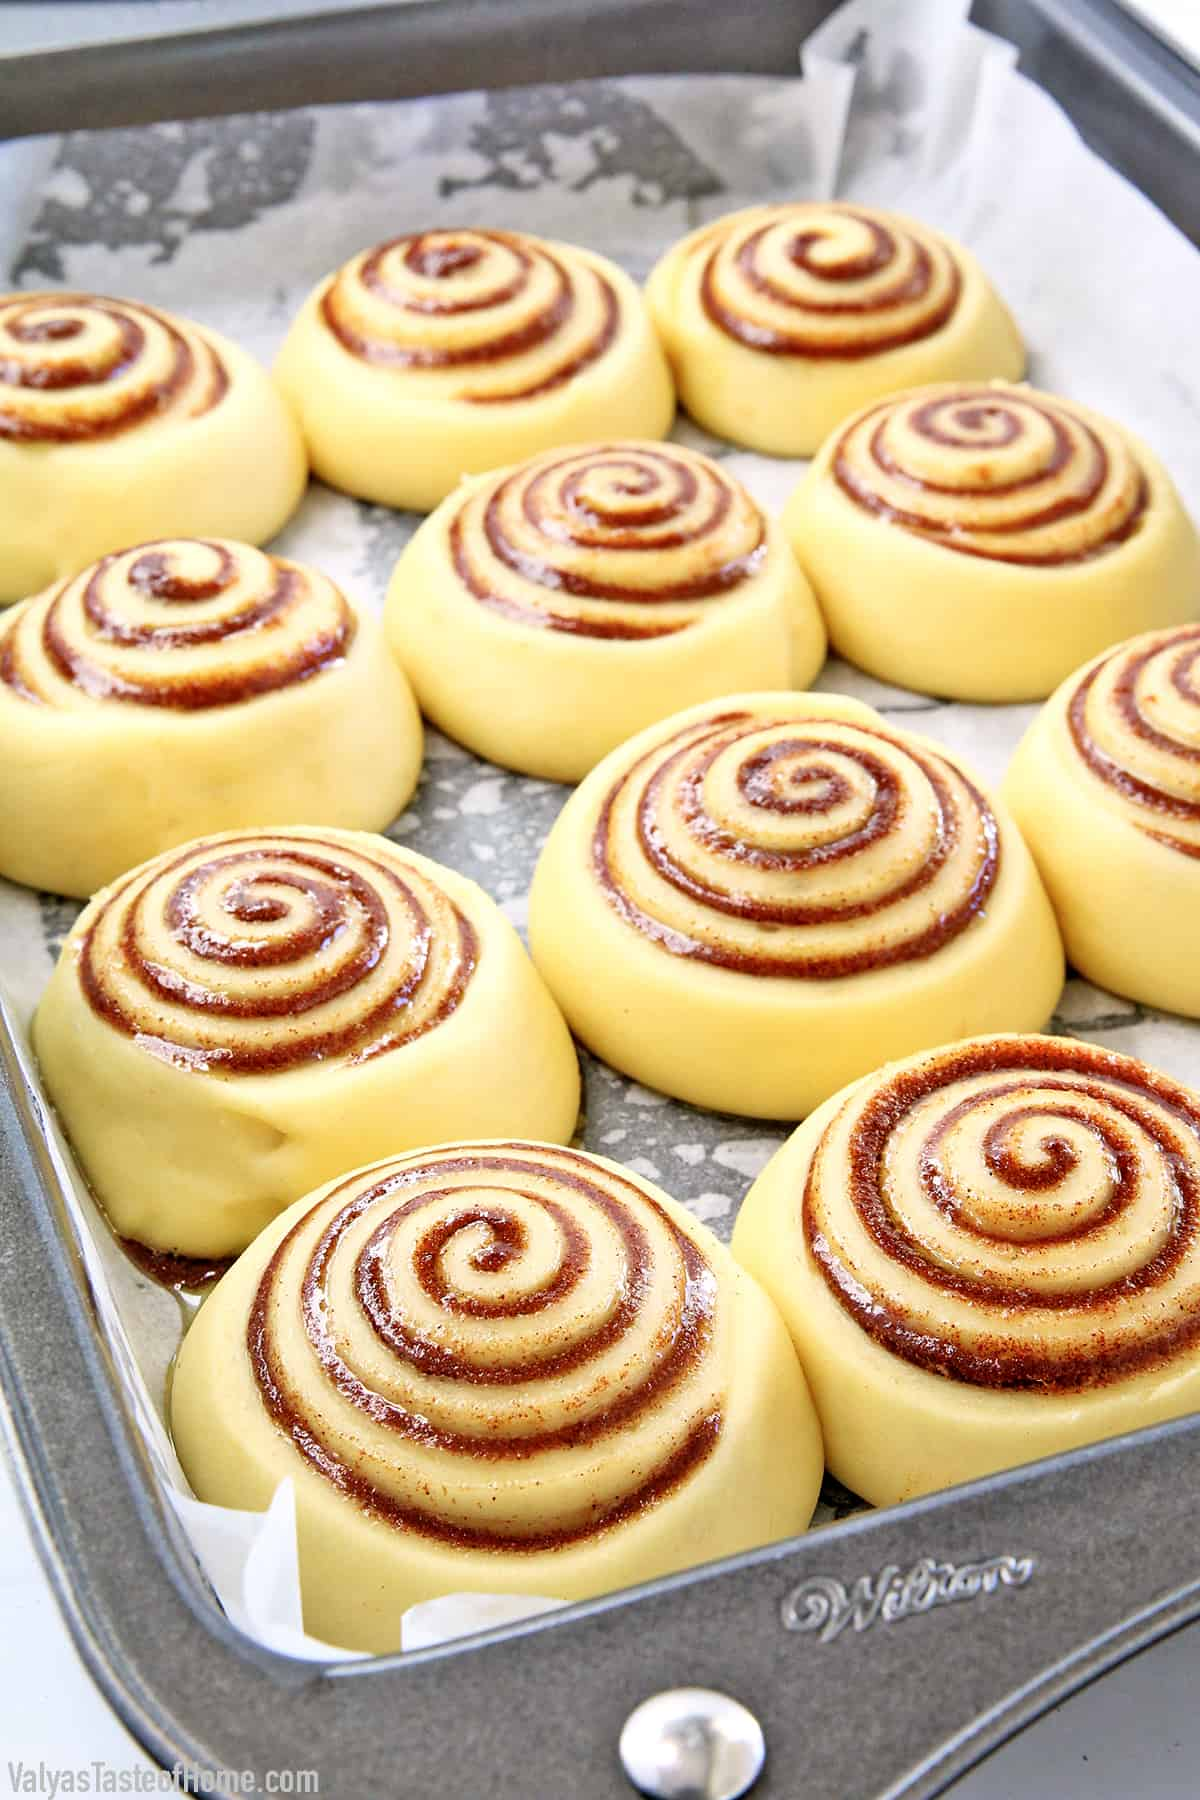 Rising the Cinnamon Rolls